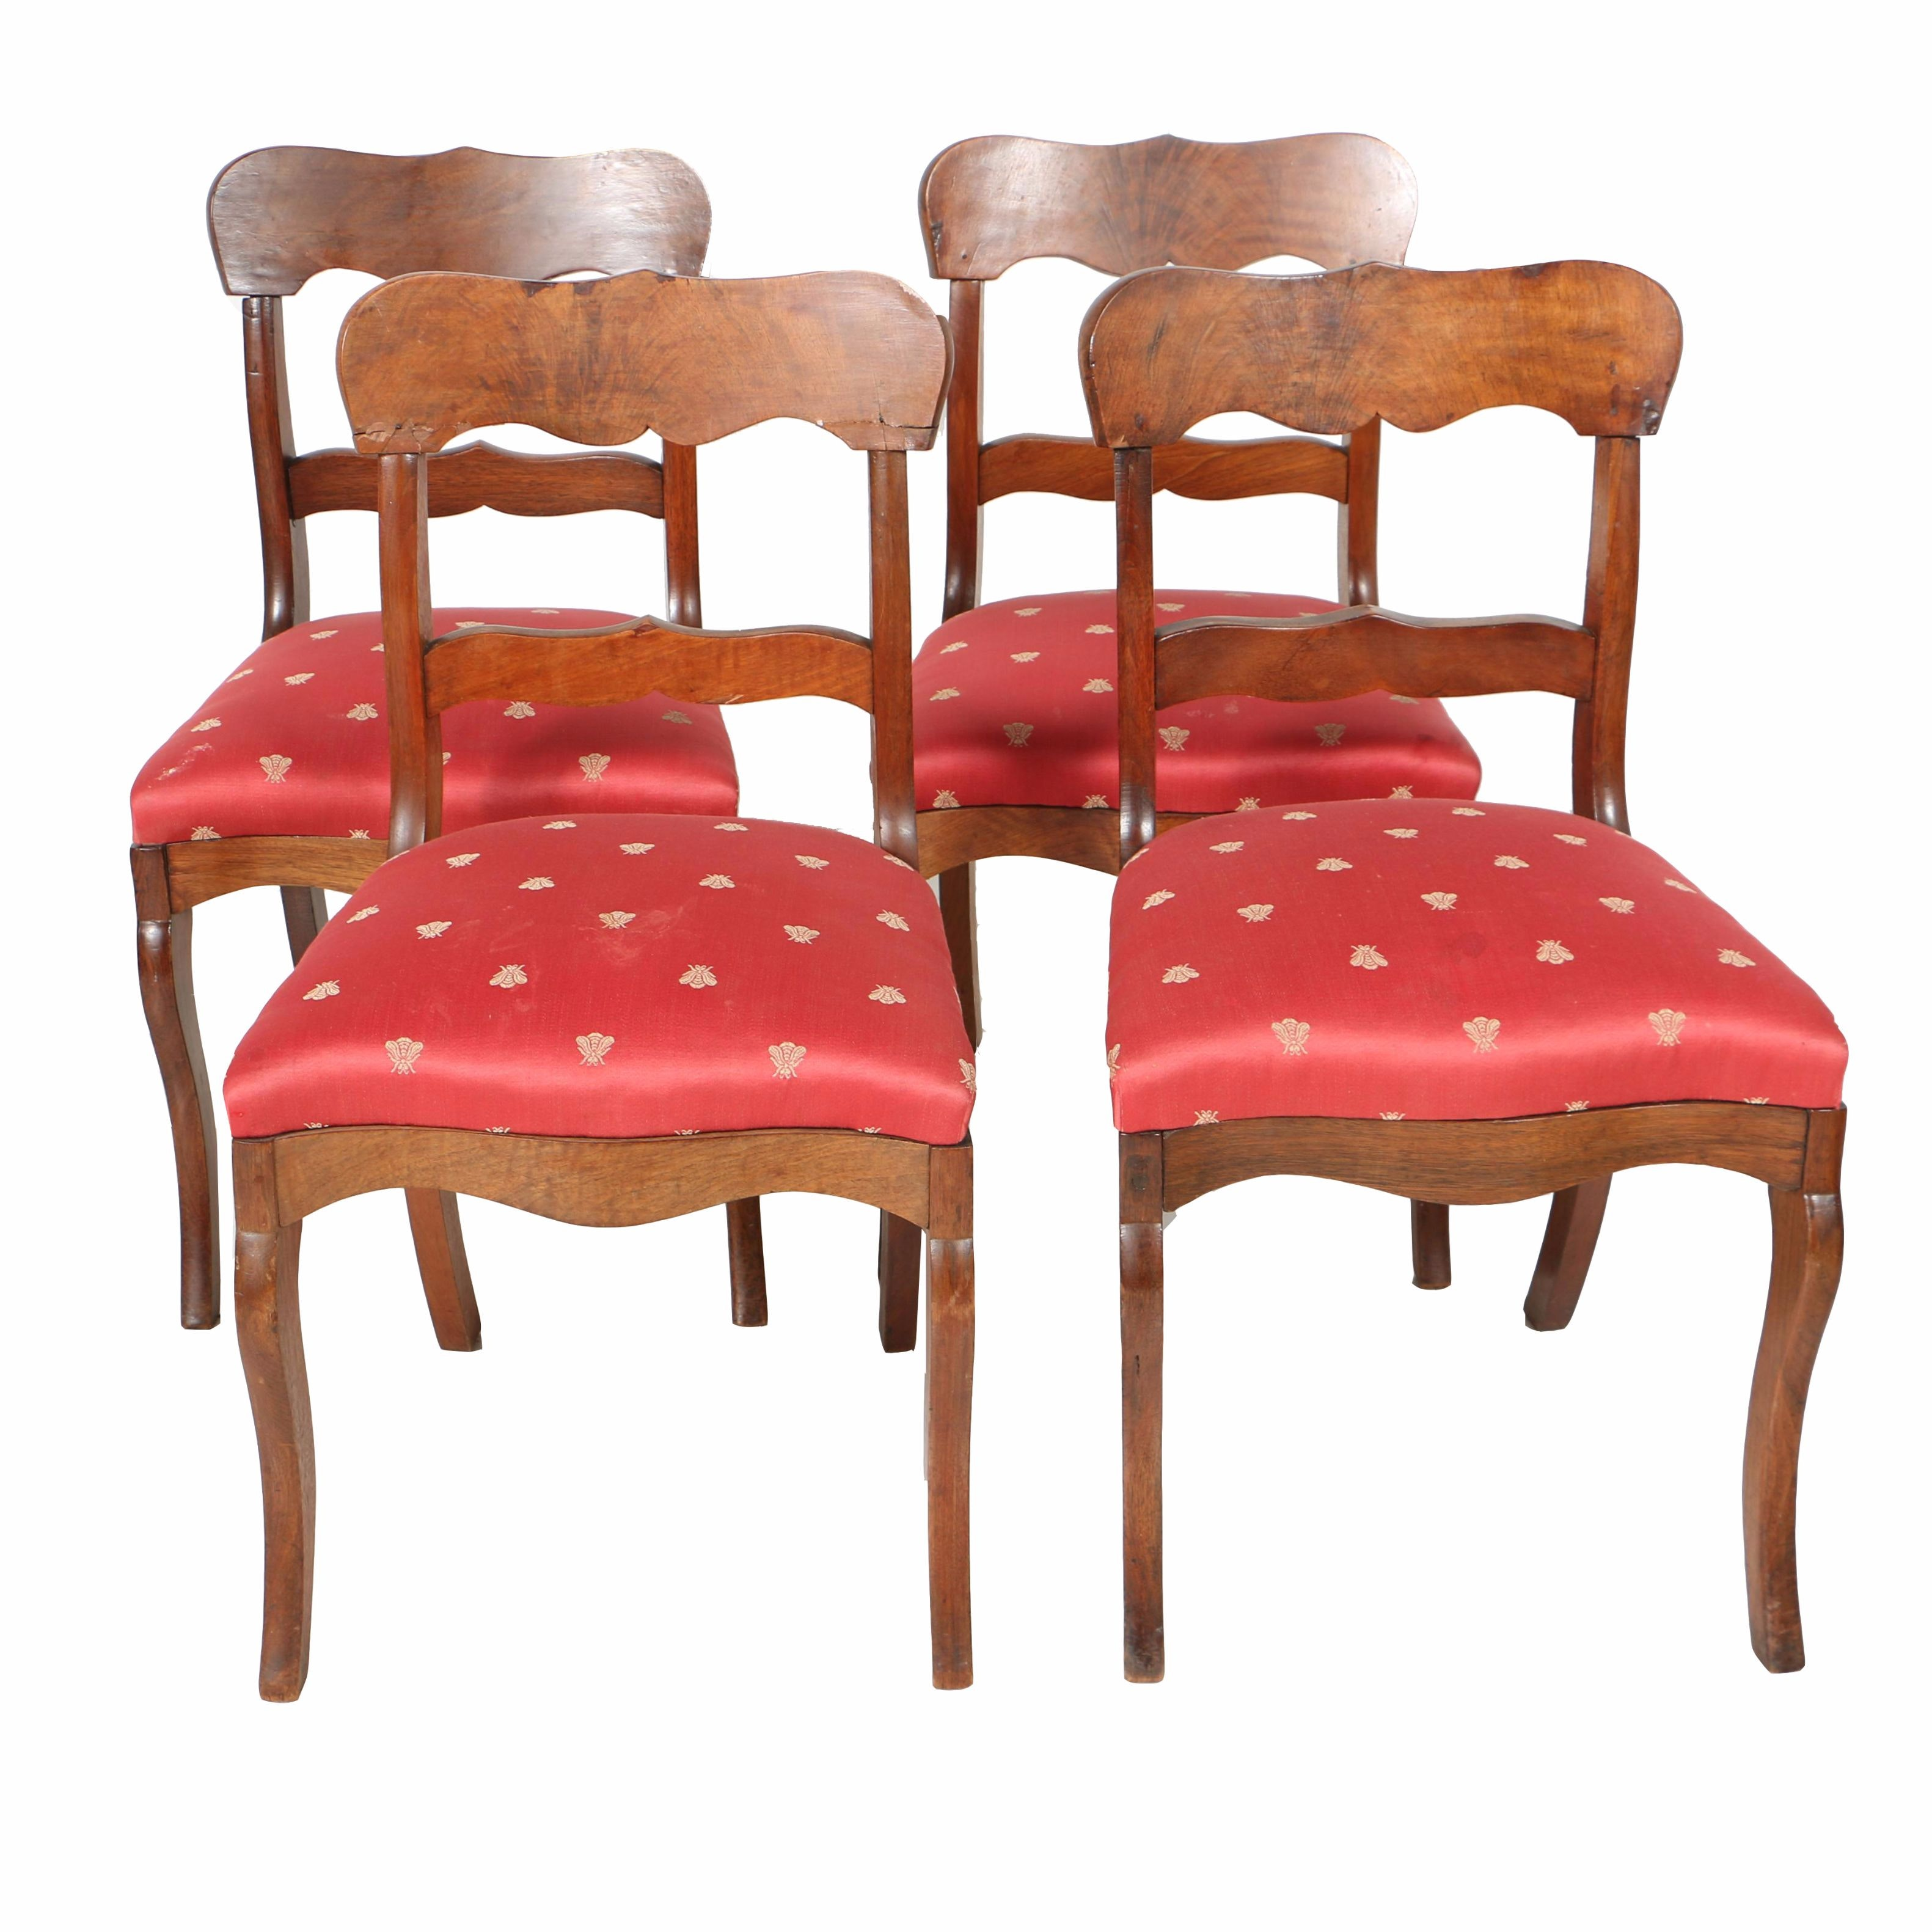 Antique American Classical Walnut Side Chairs, Circa 1815-1840